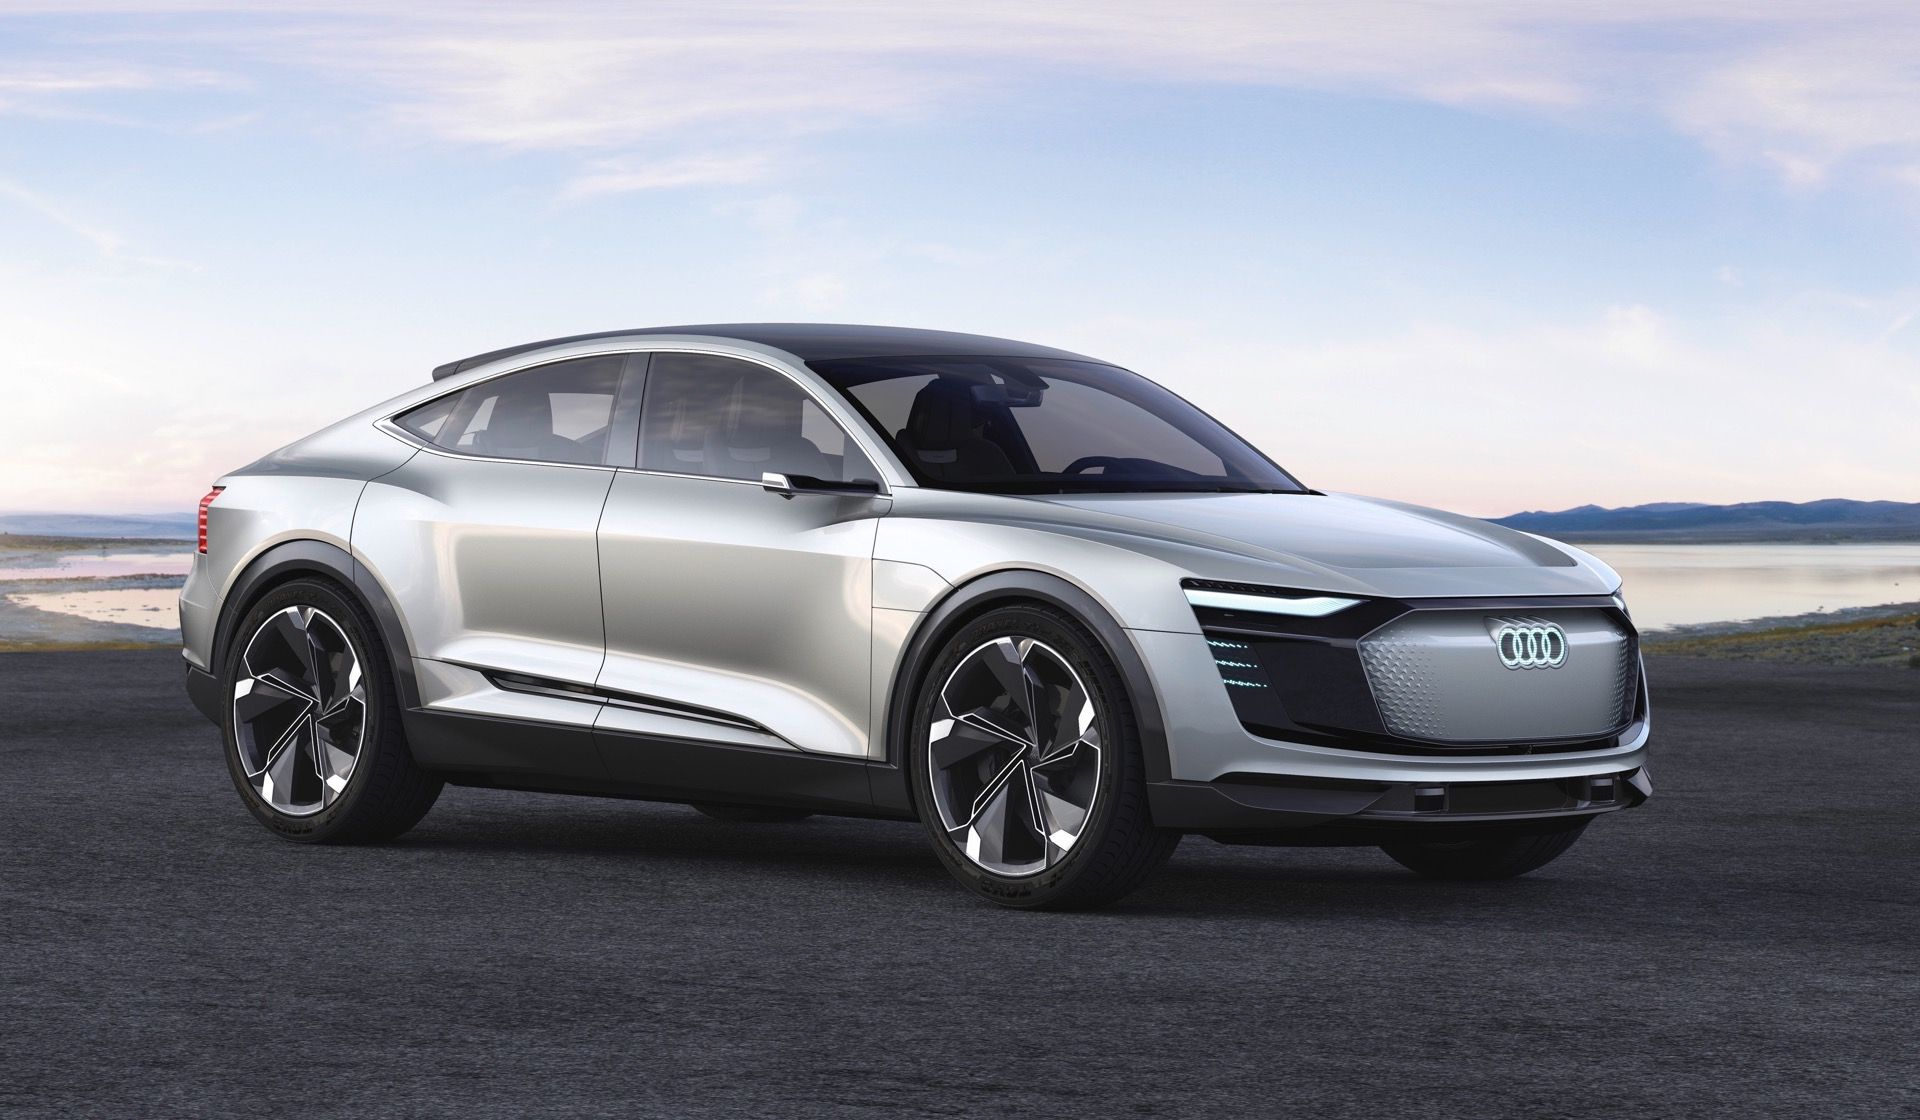 Audi And Porsche To Share New Electric Vehicle Platform By 2021 Audi E Tron Audi Tesla Model X